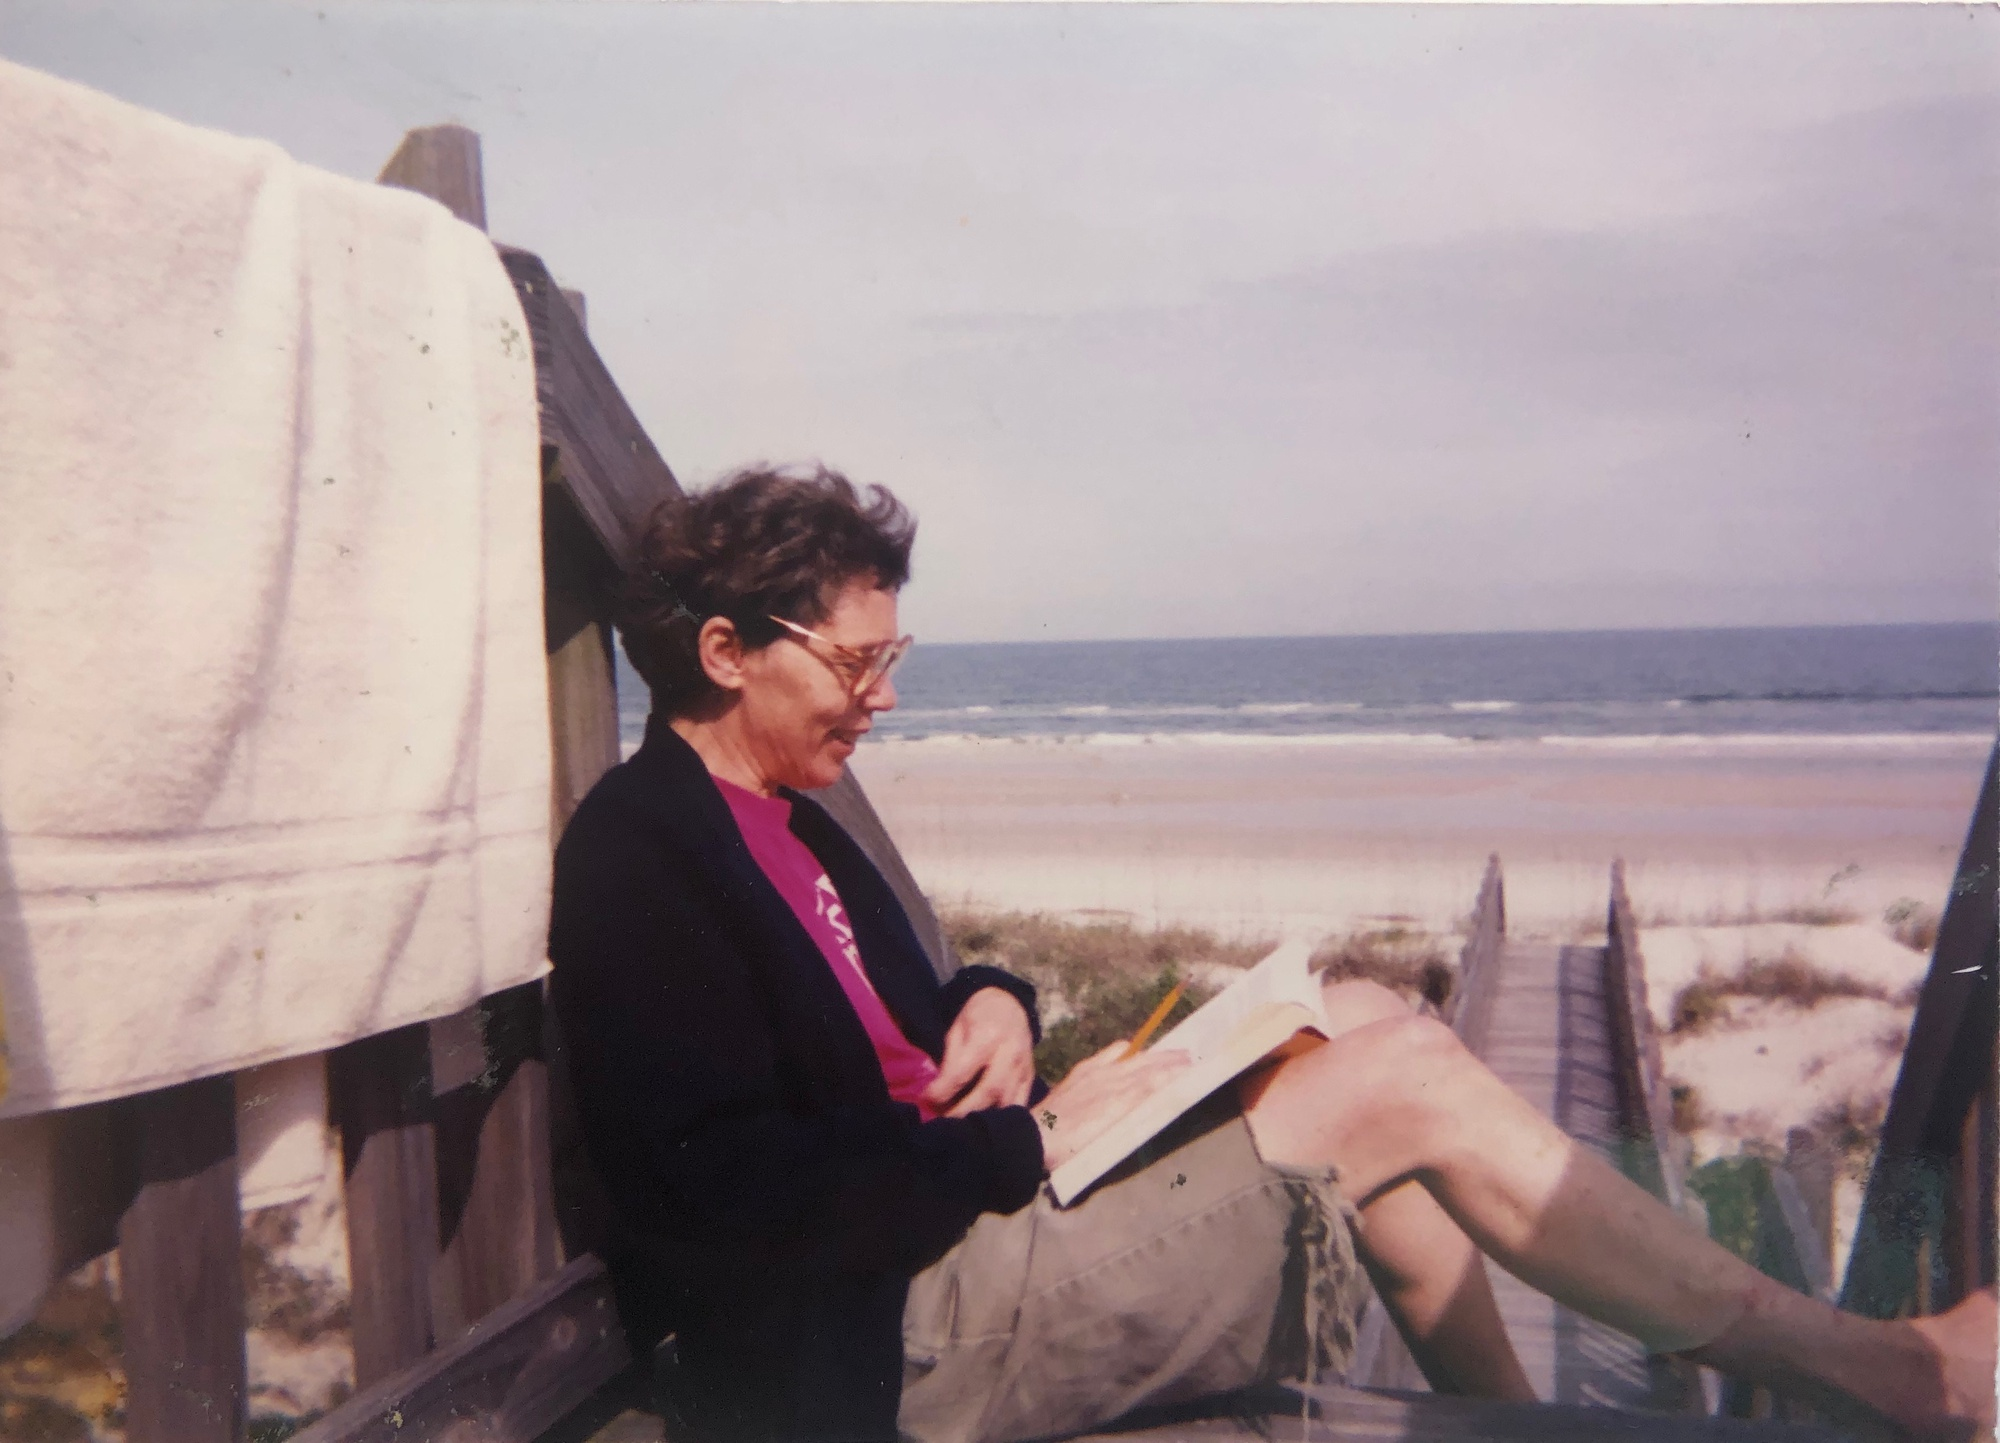 While working in Florida, Kathie Sarachild enjoys a weekend getaway in early March 1994.